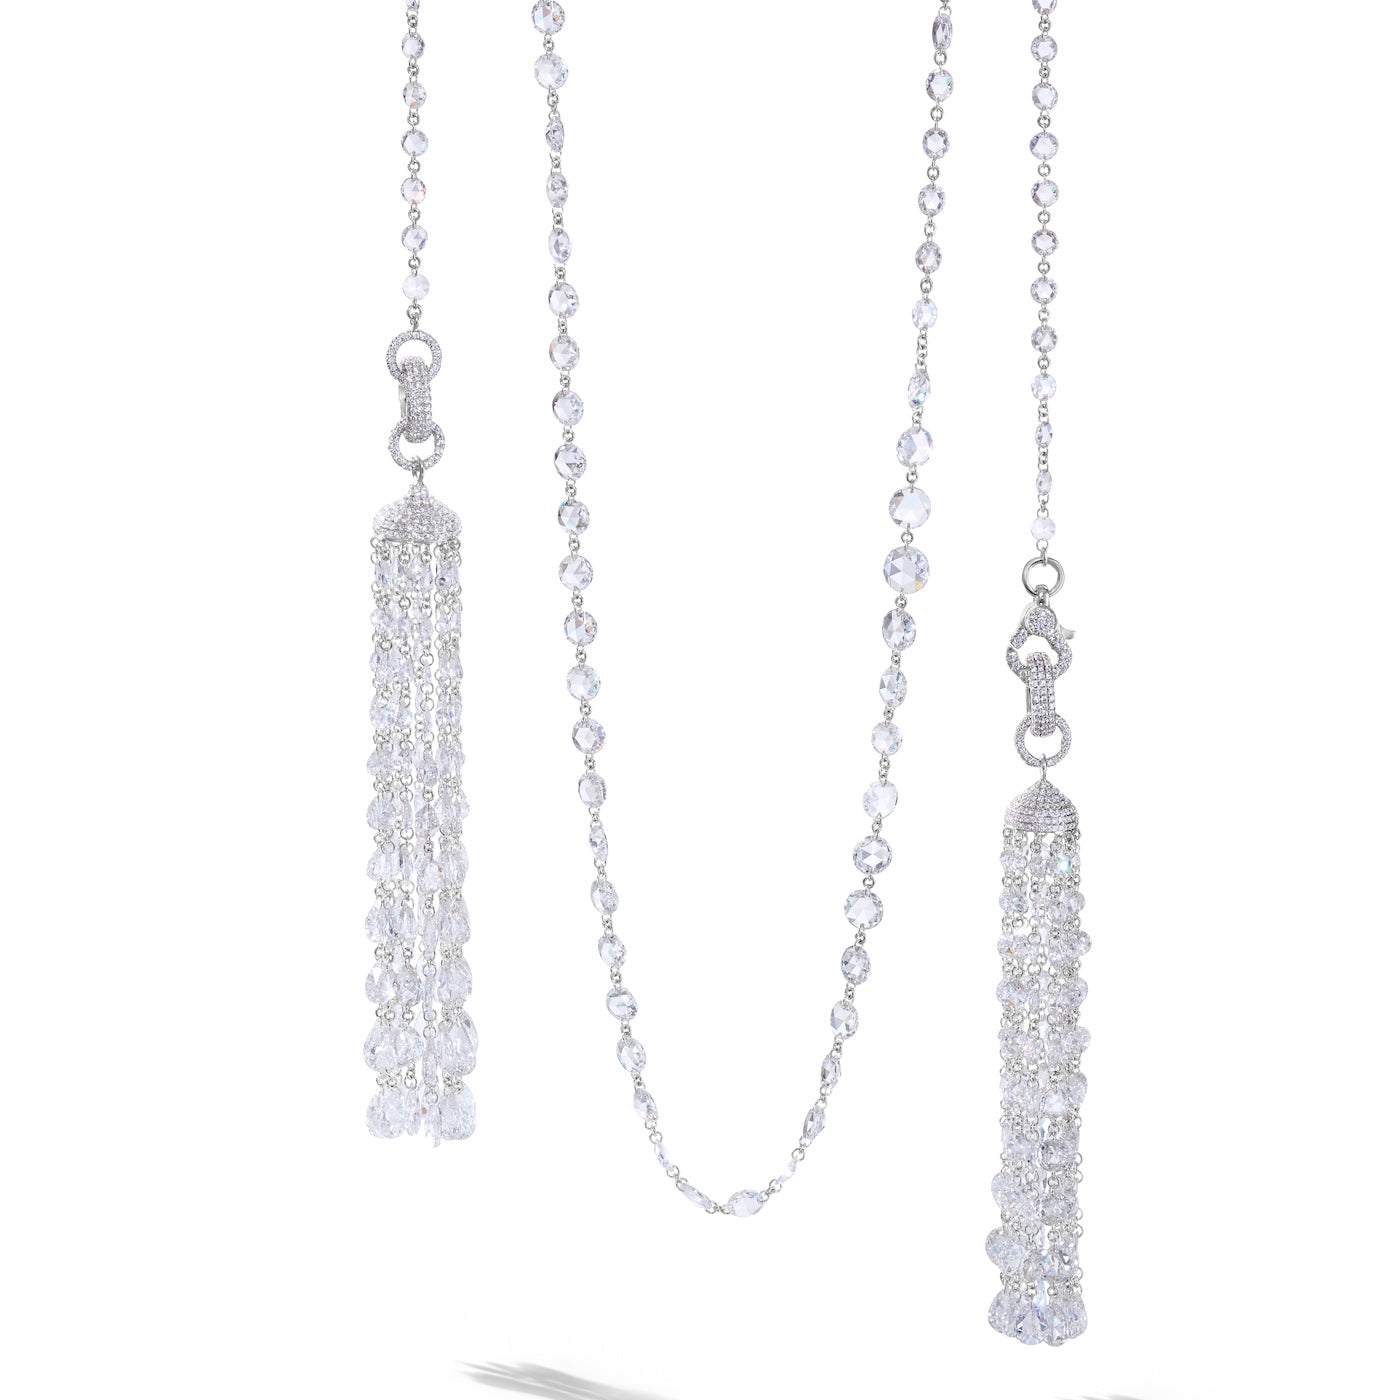 64Facets rose-cut diamond tassels and chain